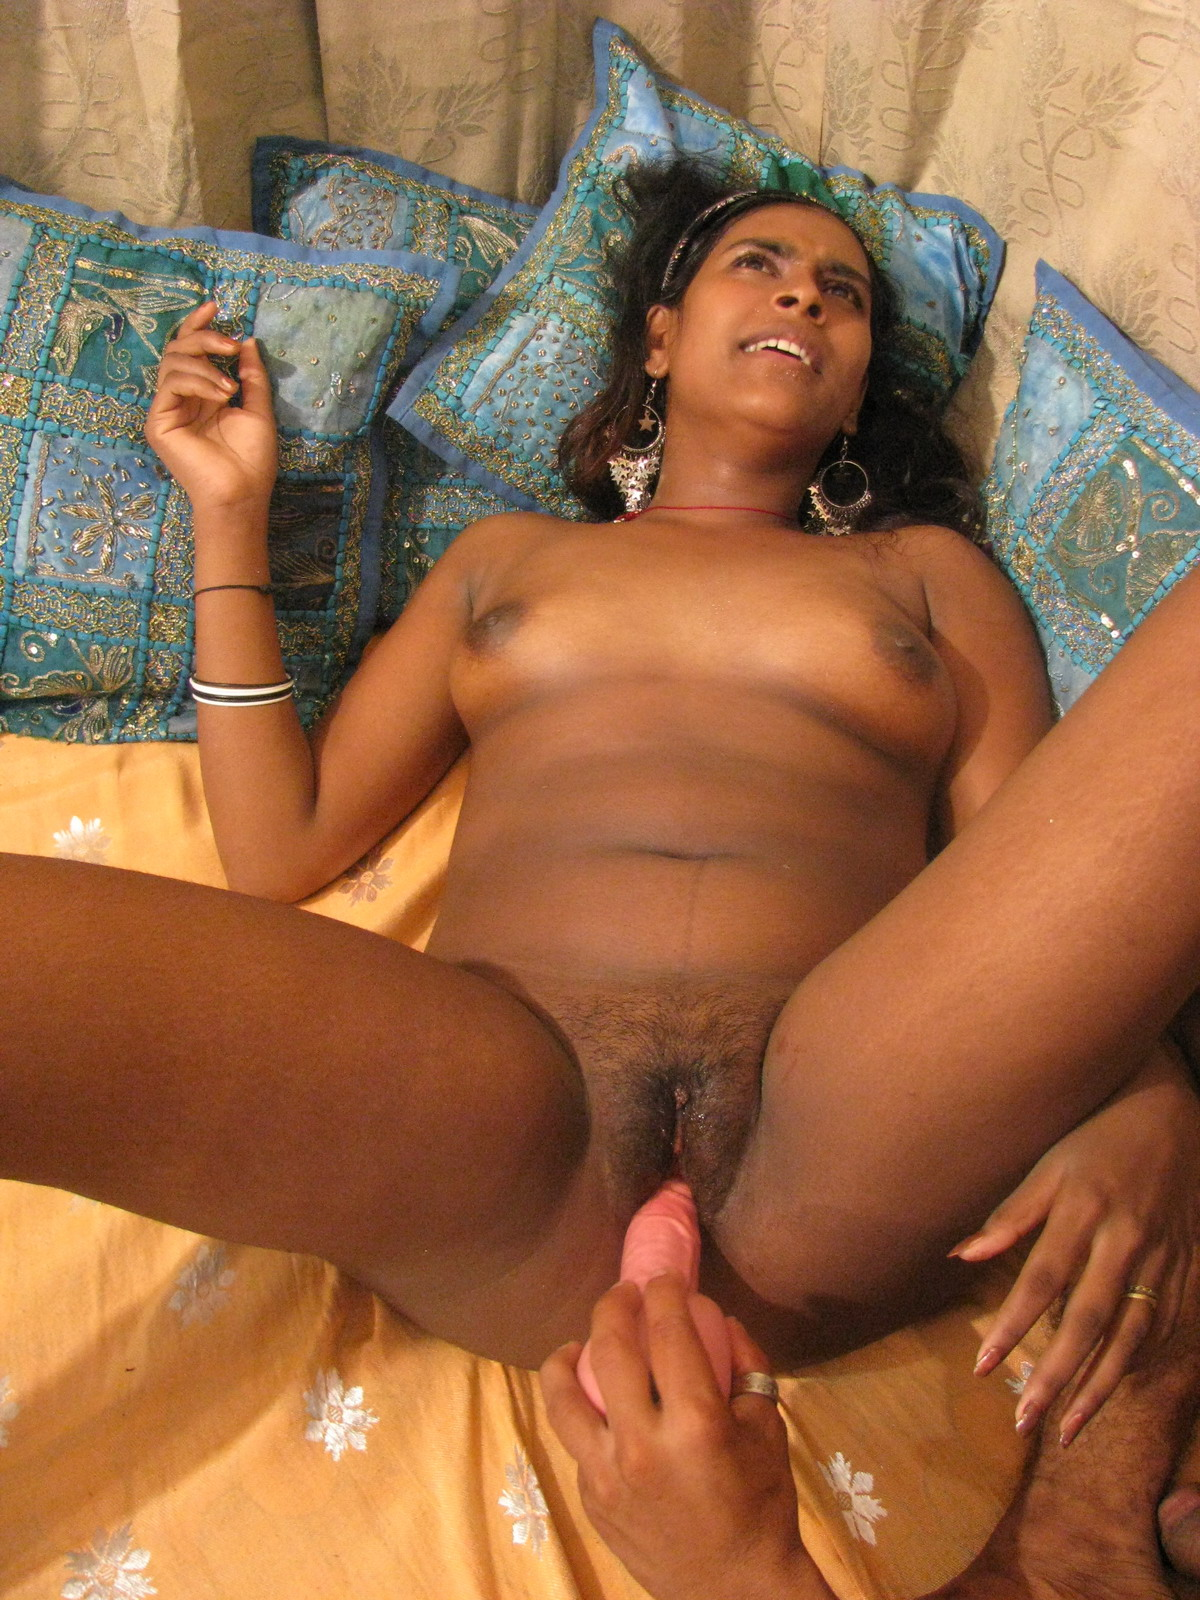 Indian porn 3d image nude video